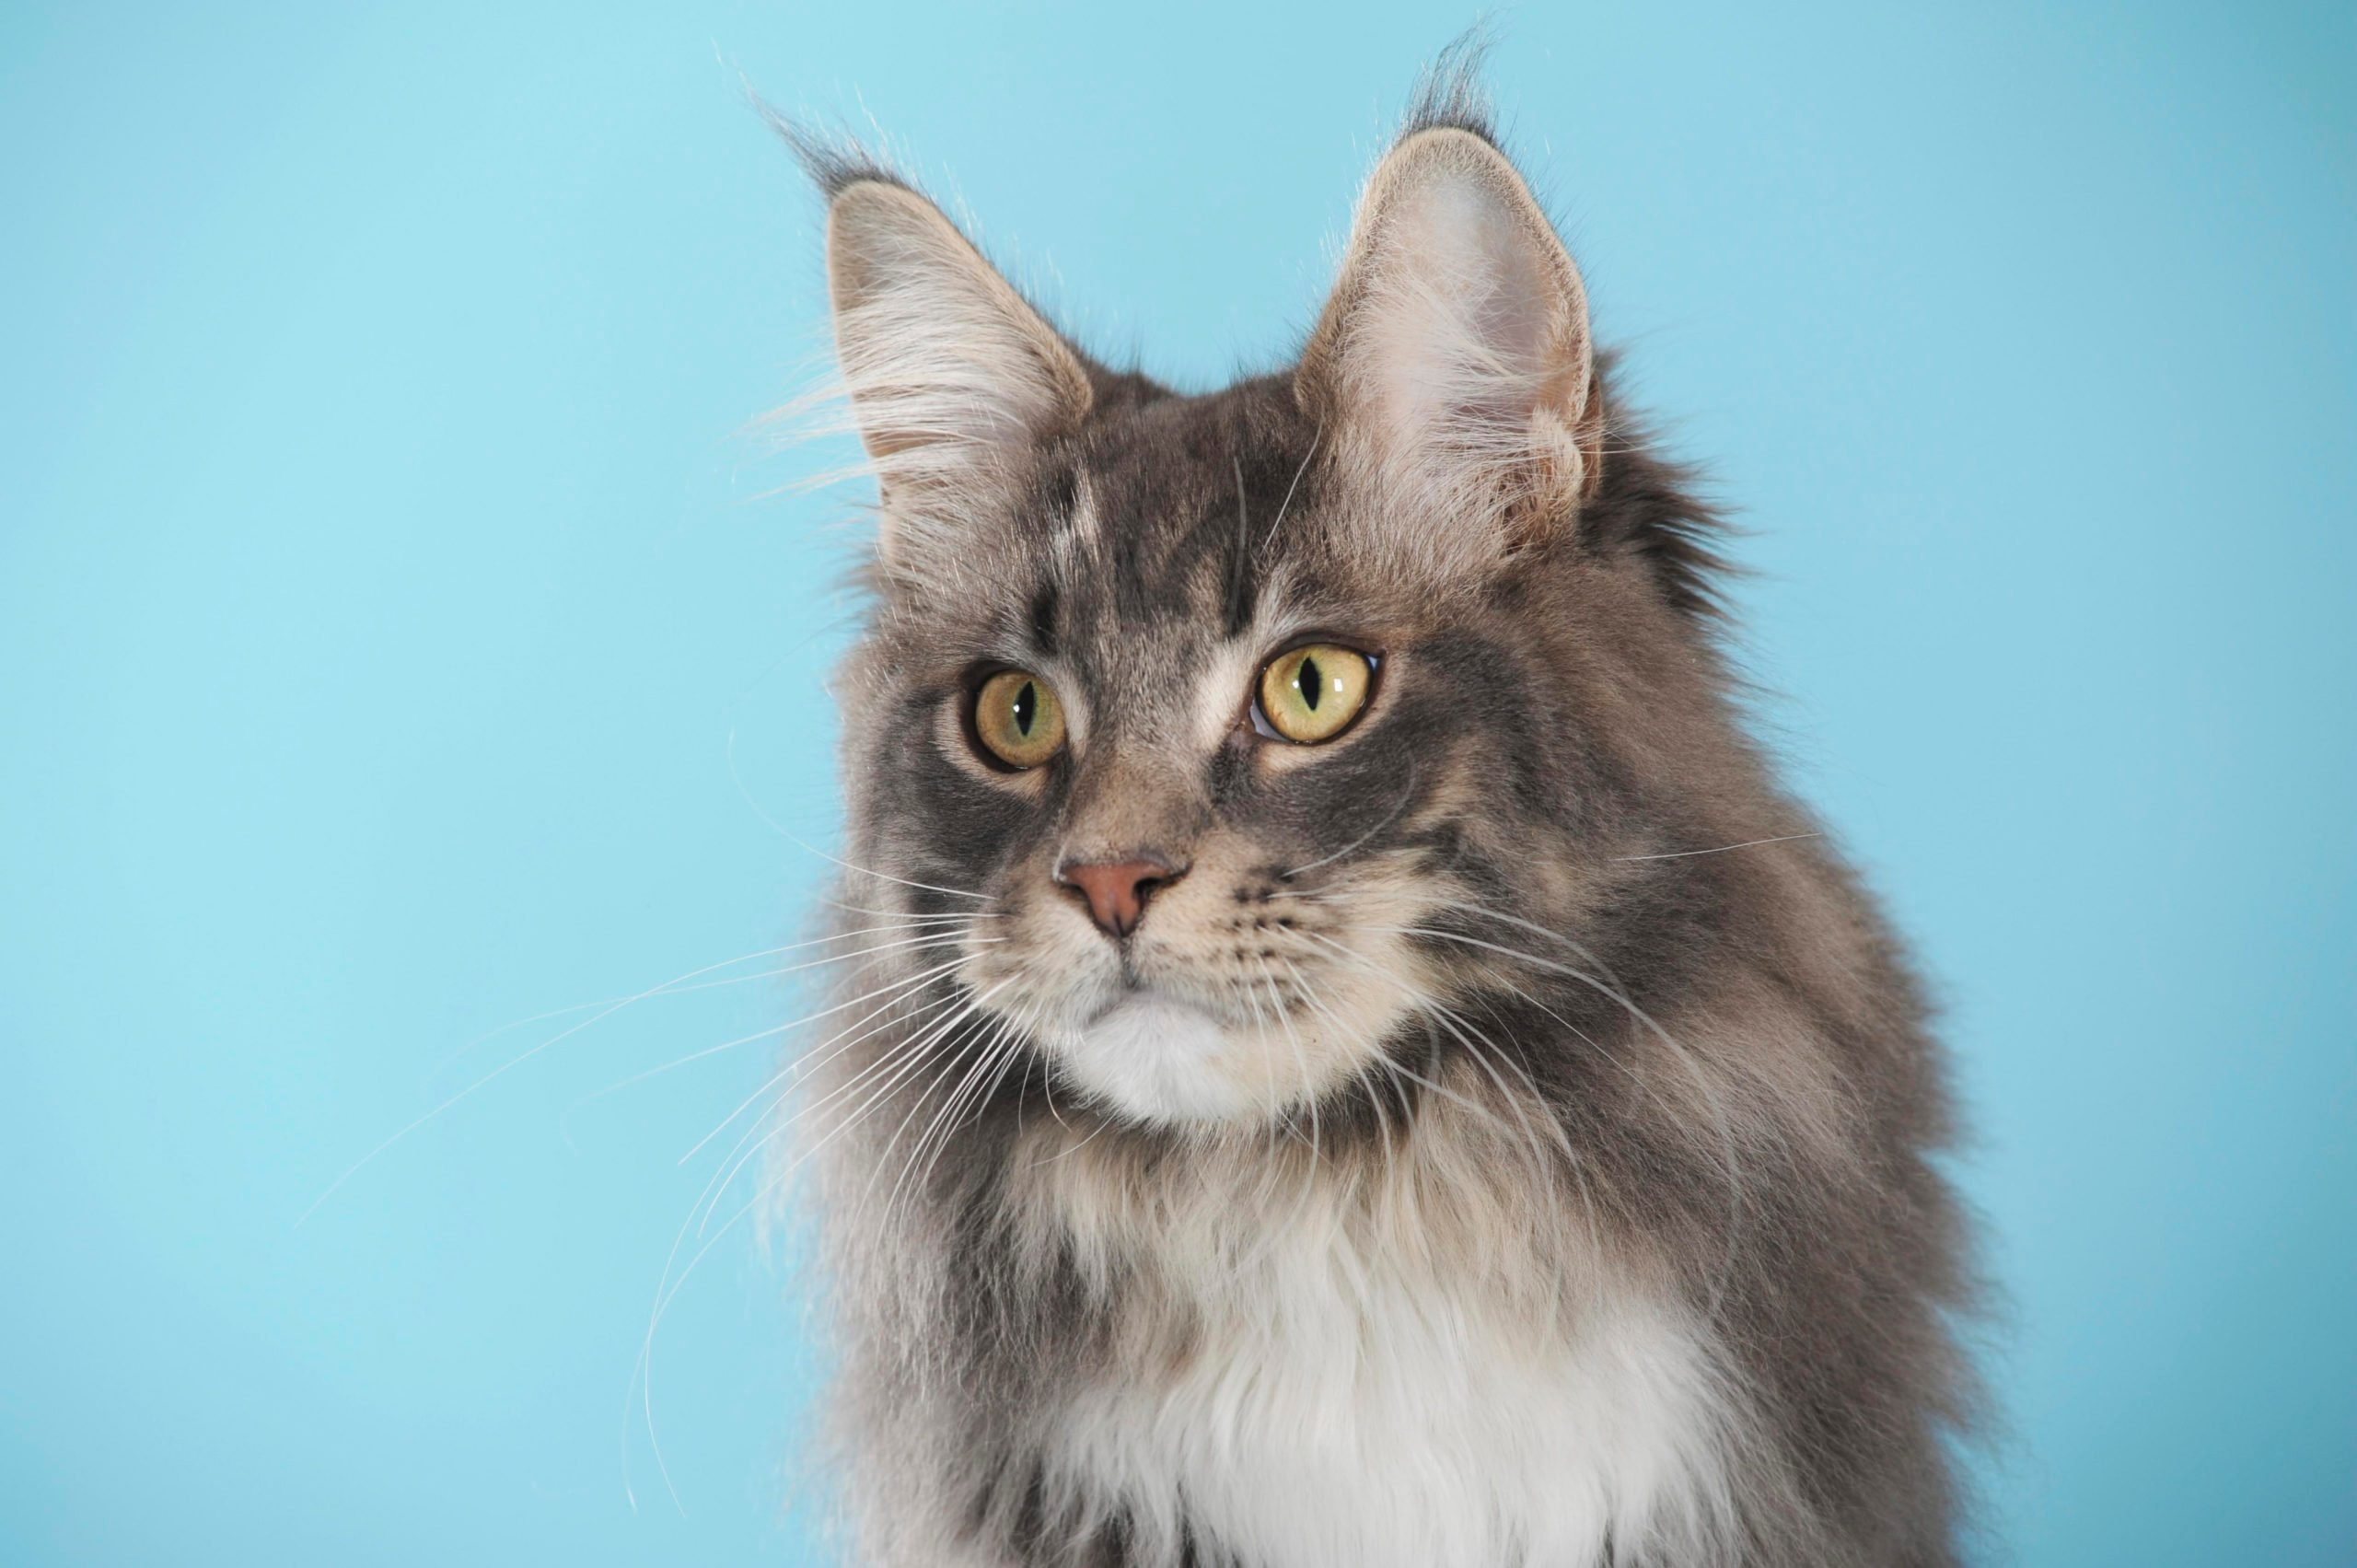 Maine Coon, cat, classic tabby, portrait